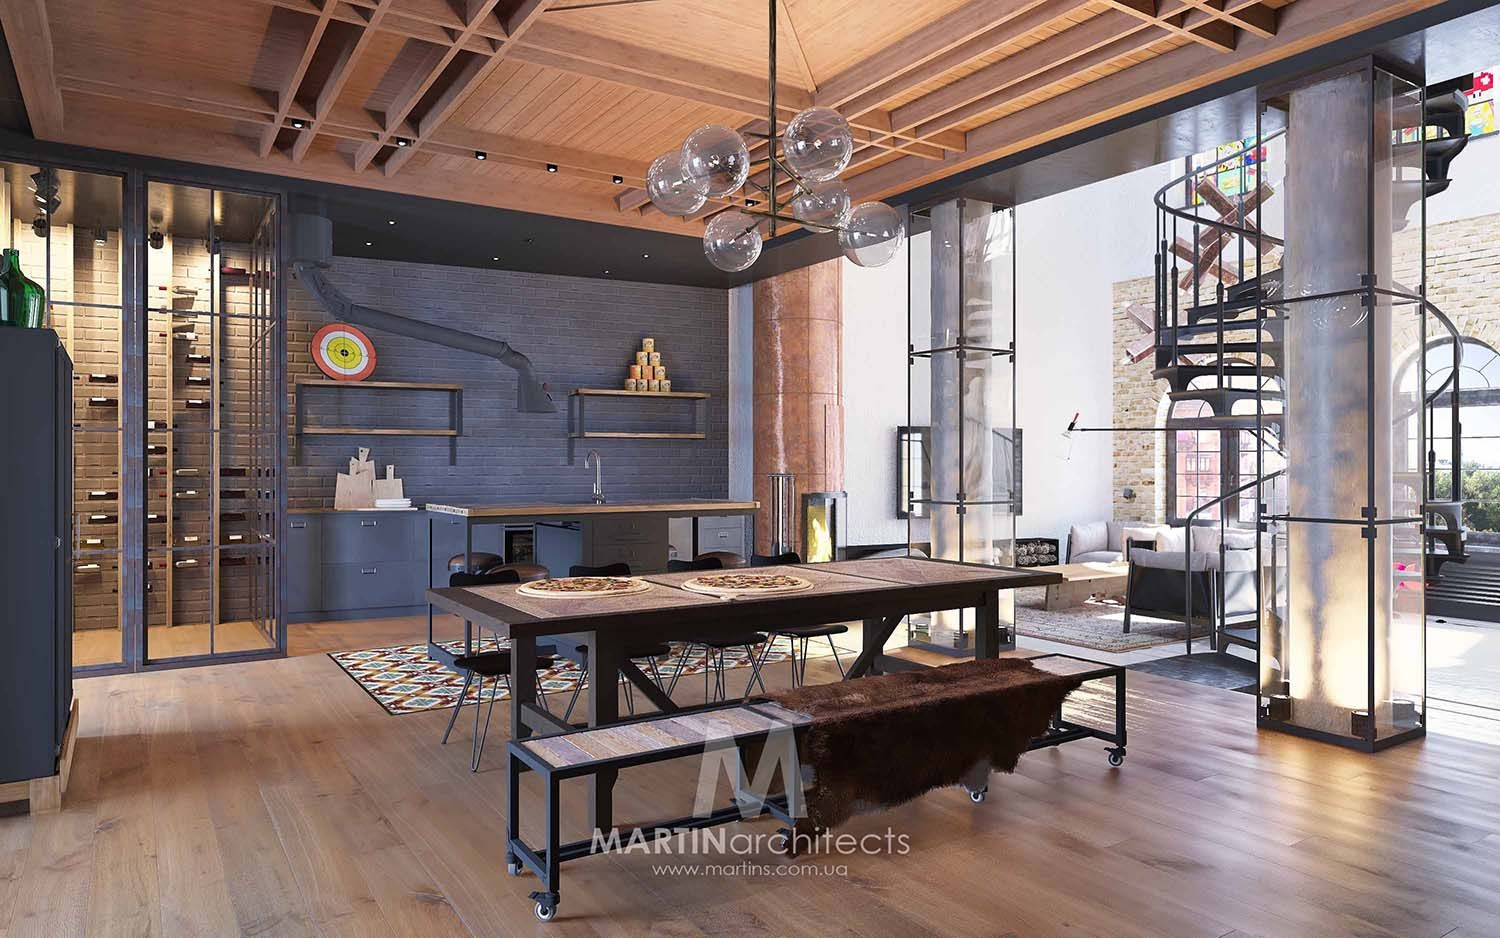 Loft Amenagement Interieur Industrial Style Loft In Kiev Showcases Impressive Design